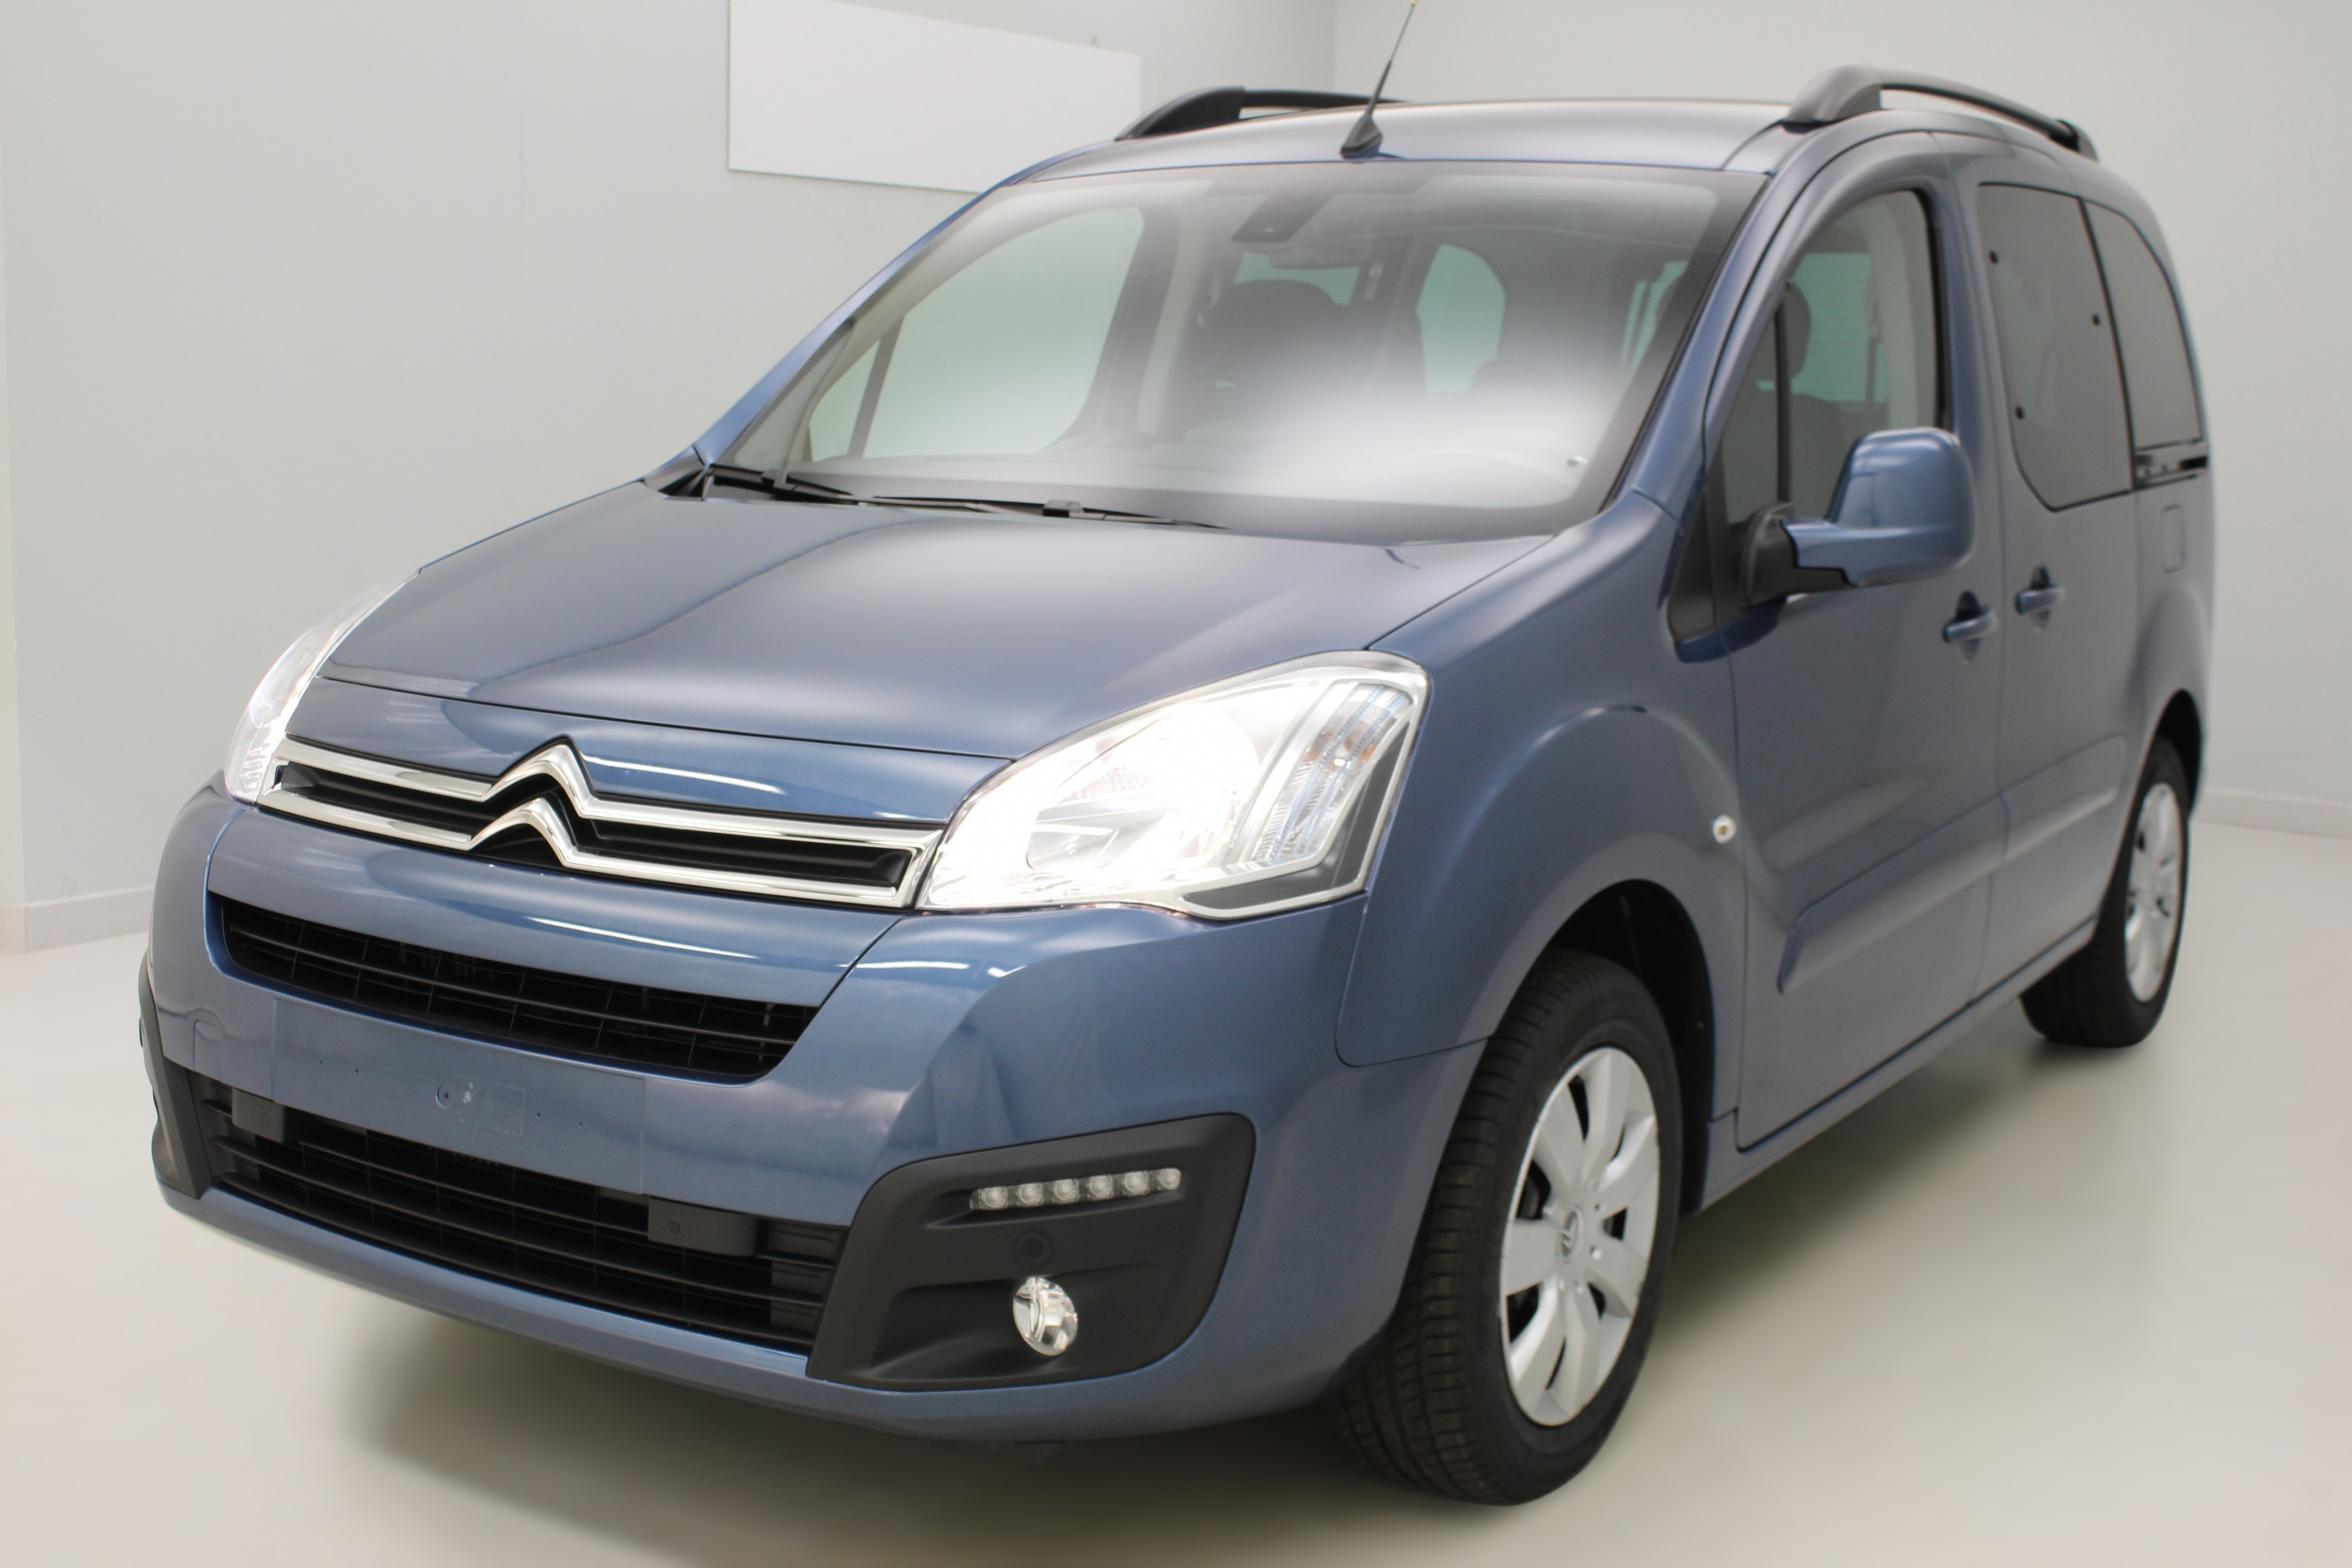 CITROEN Berlingo Multispace BlueHDi 120 S&S Shine Bleu Kyanos + Caméra de recul + Garantie 3 ans ou 100 000 kms avec options